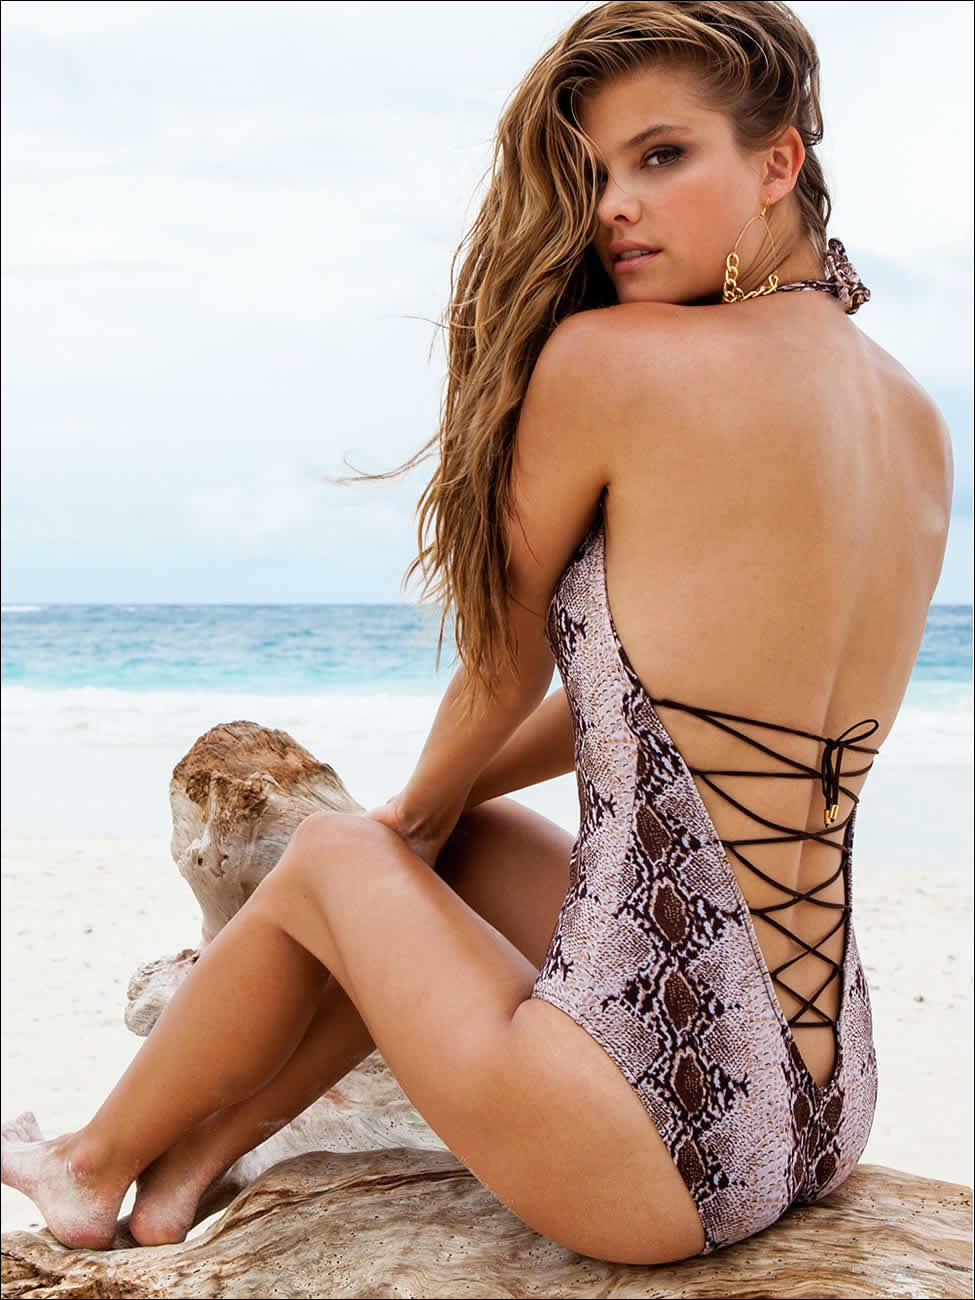 Swimbook swimwear swimsuit Nina Agdal Snakeskin Lace-up Tank by Sauvage